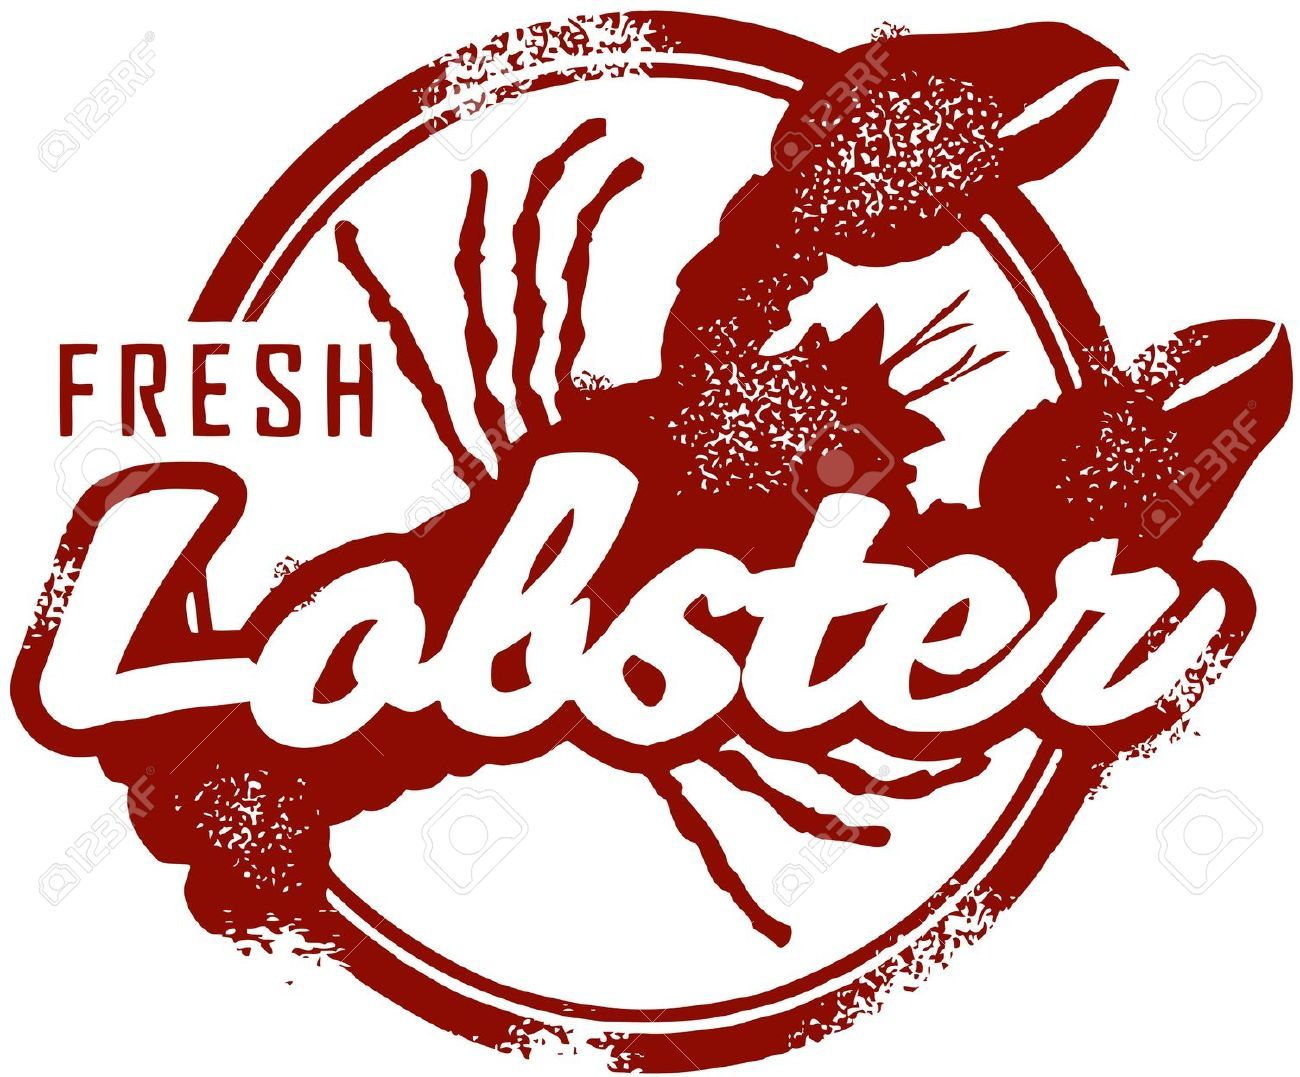 lobster stock vector illustration and royalty free lobster clipart [ 1300 x 1077 Pixel ]